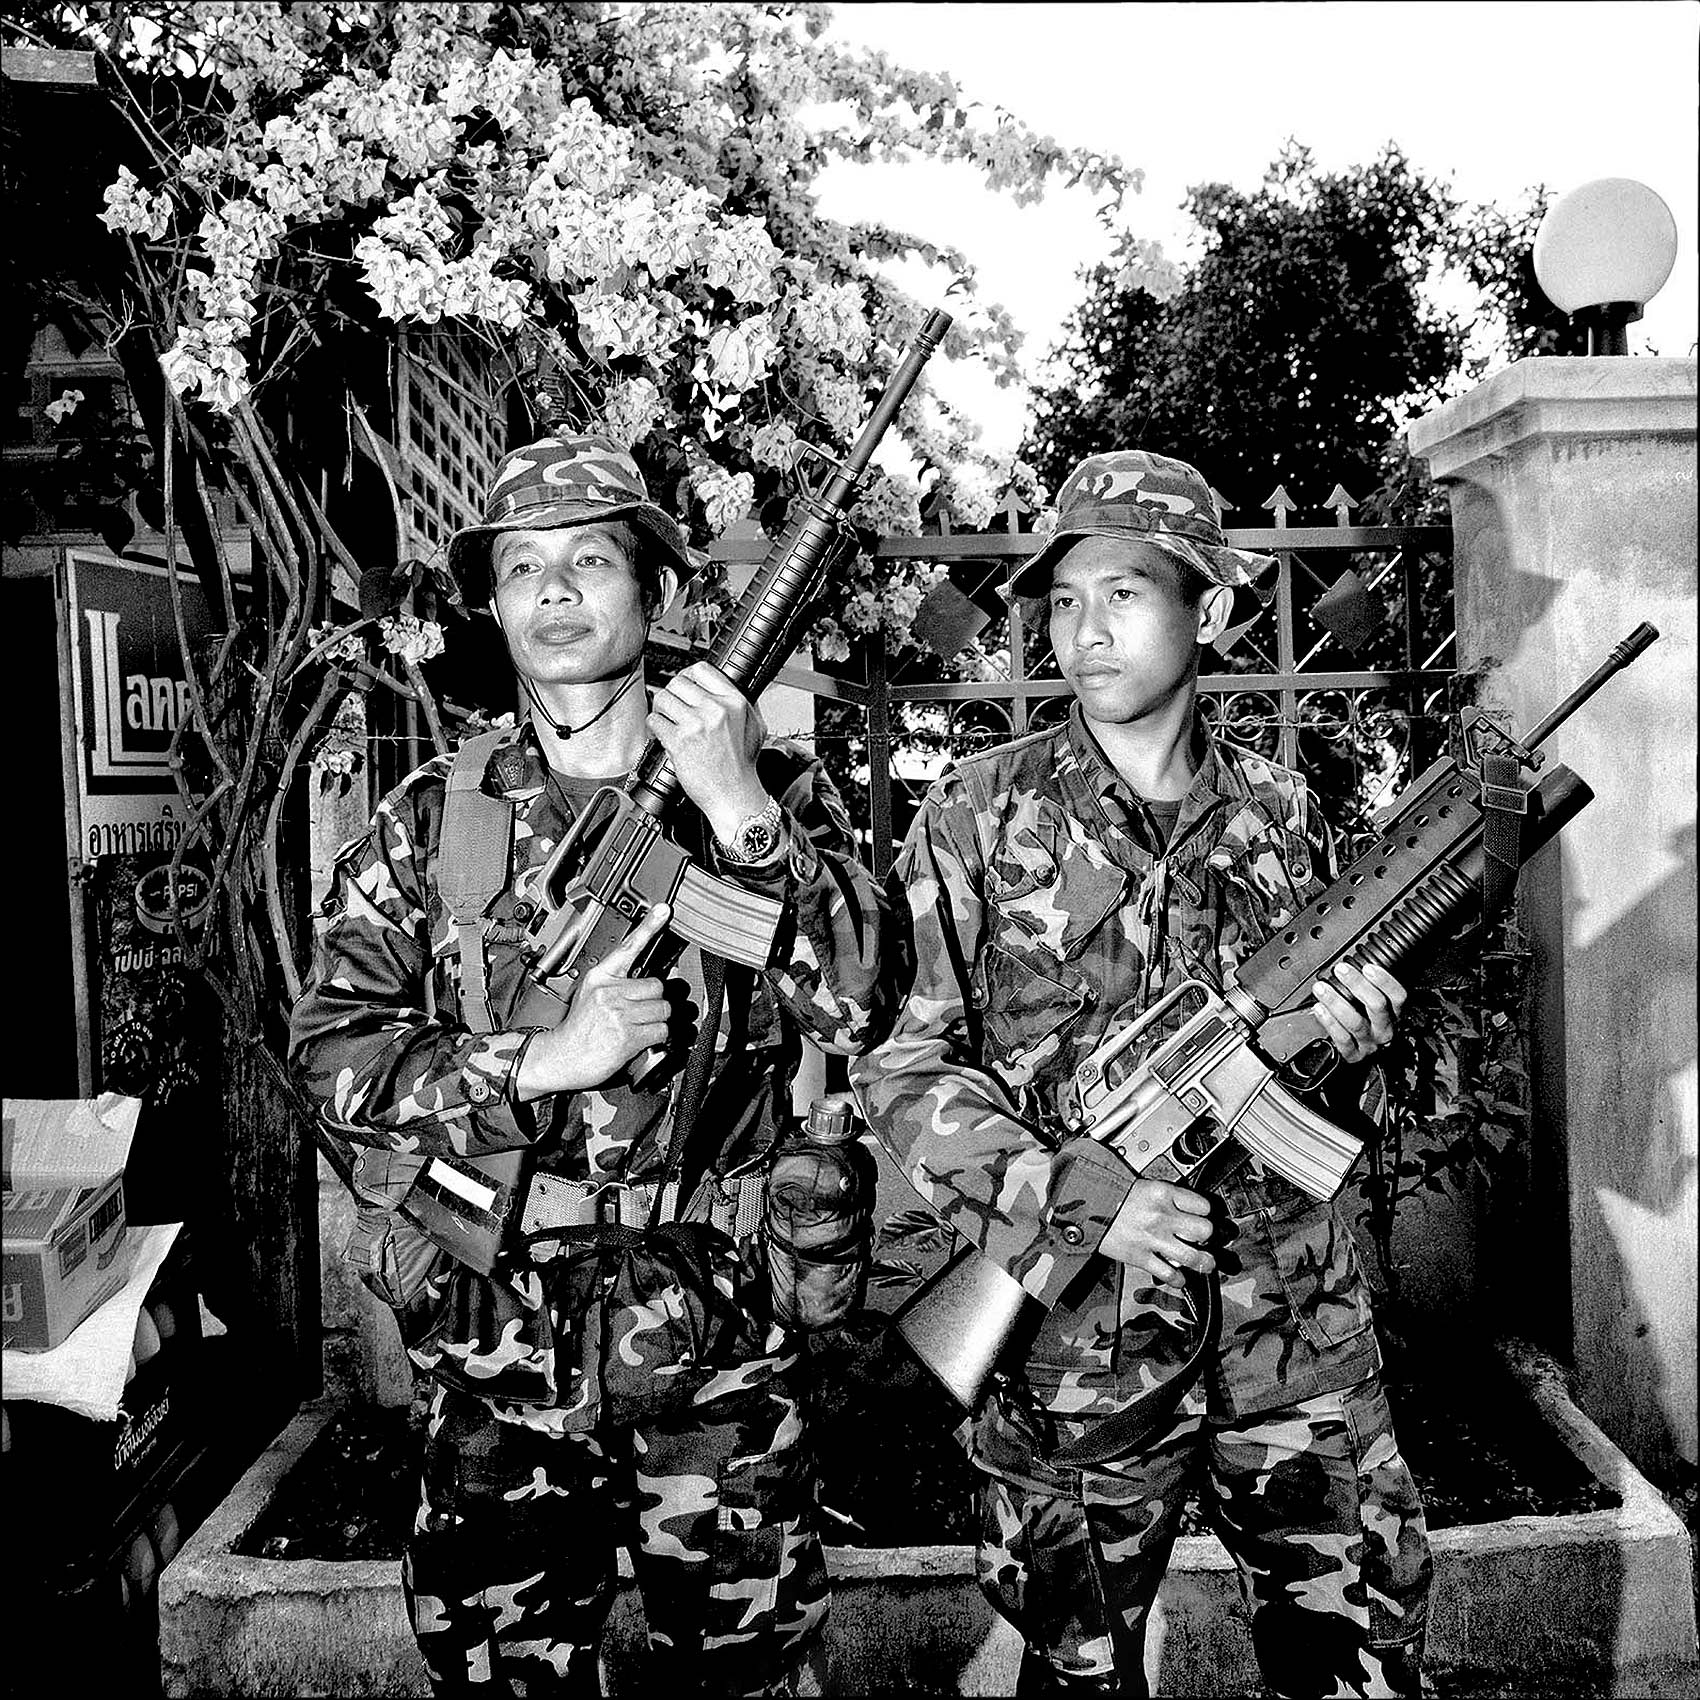 two-thai-soldiers-show-off-their-weapons-at-a-small-town-near-the-border-with-myanmar